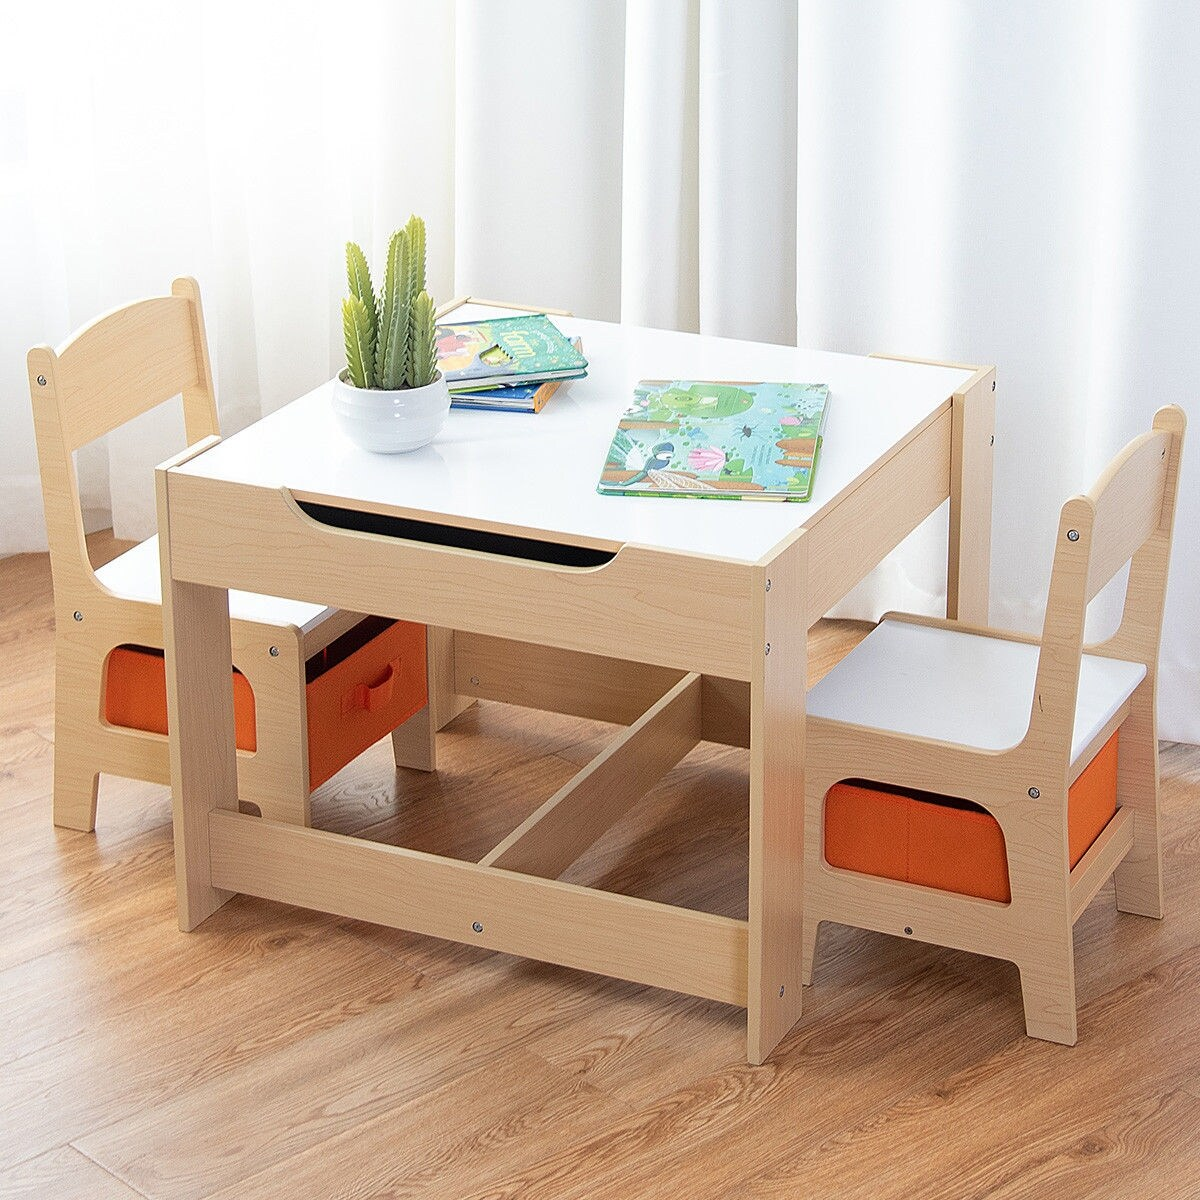 Kids Wood Table And Chairs Gymax Children Kids Table Chairs Set With Storage Boxes Blackboard Whiteboard Drawing